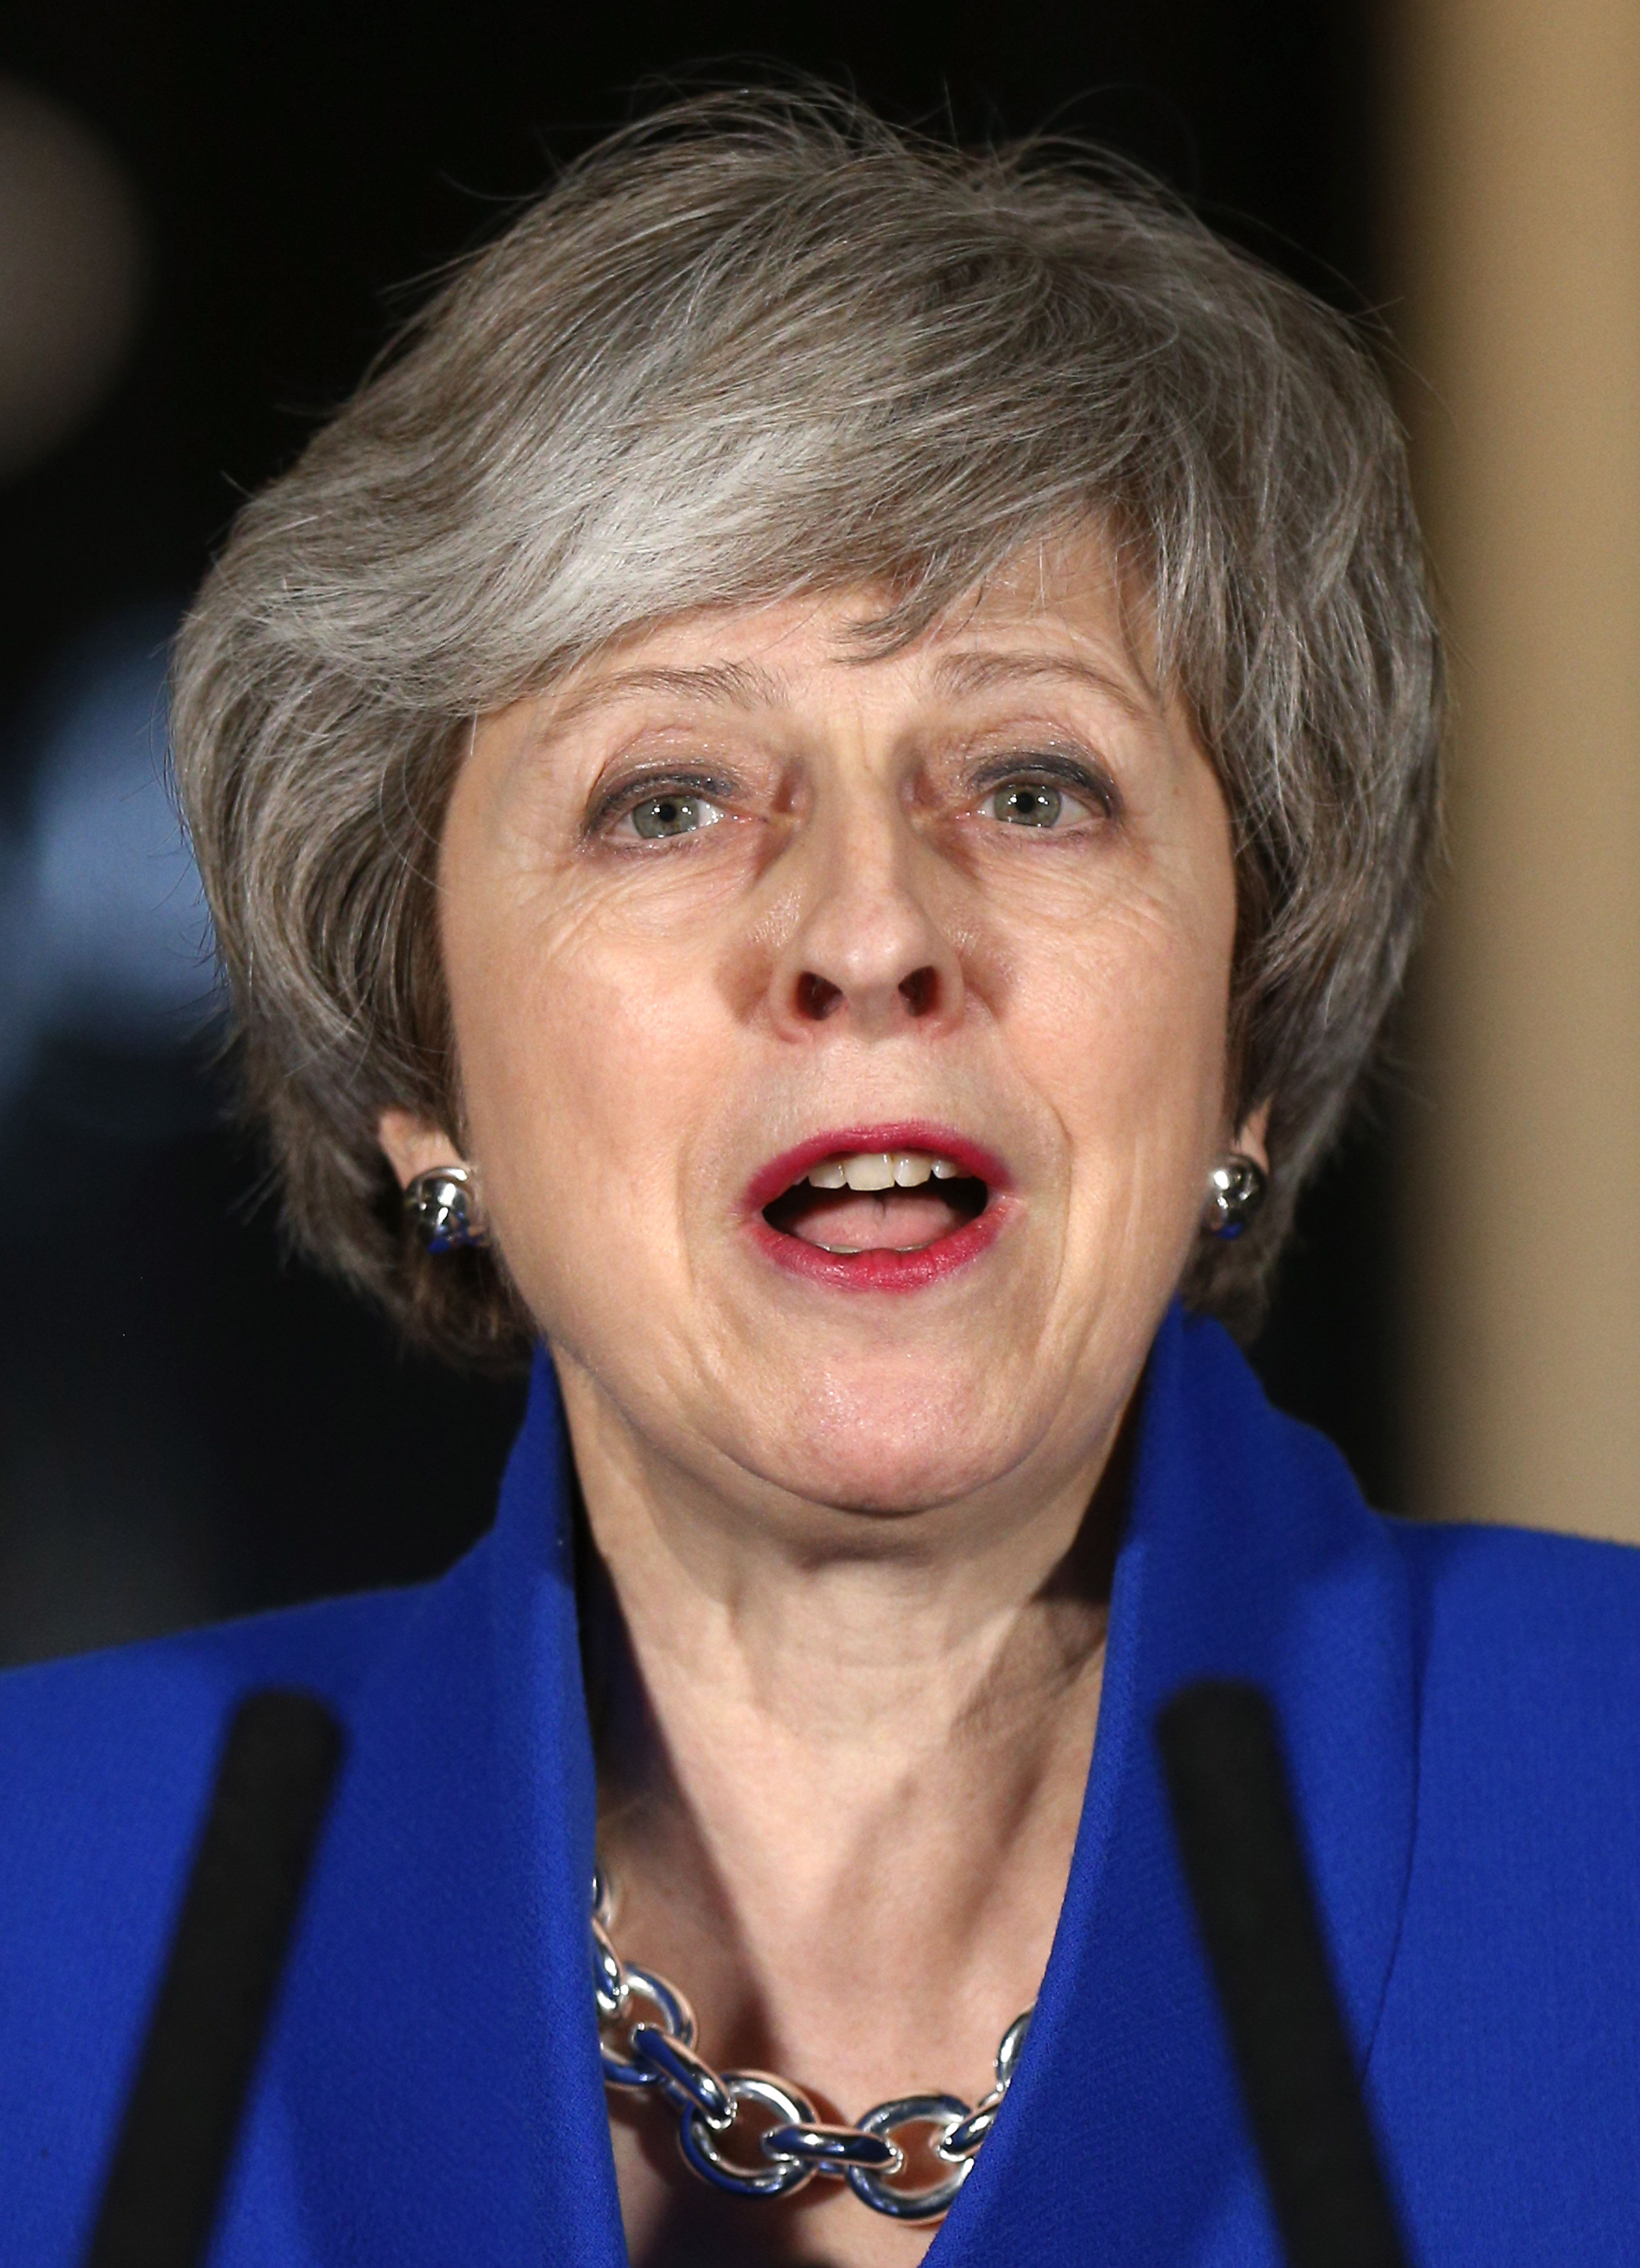 'Fascist' Row As May Hints New Brexit Vote Will Spark